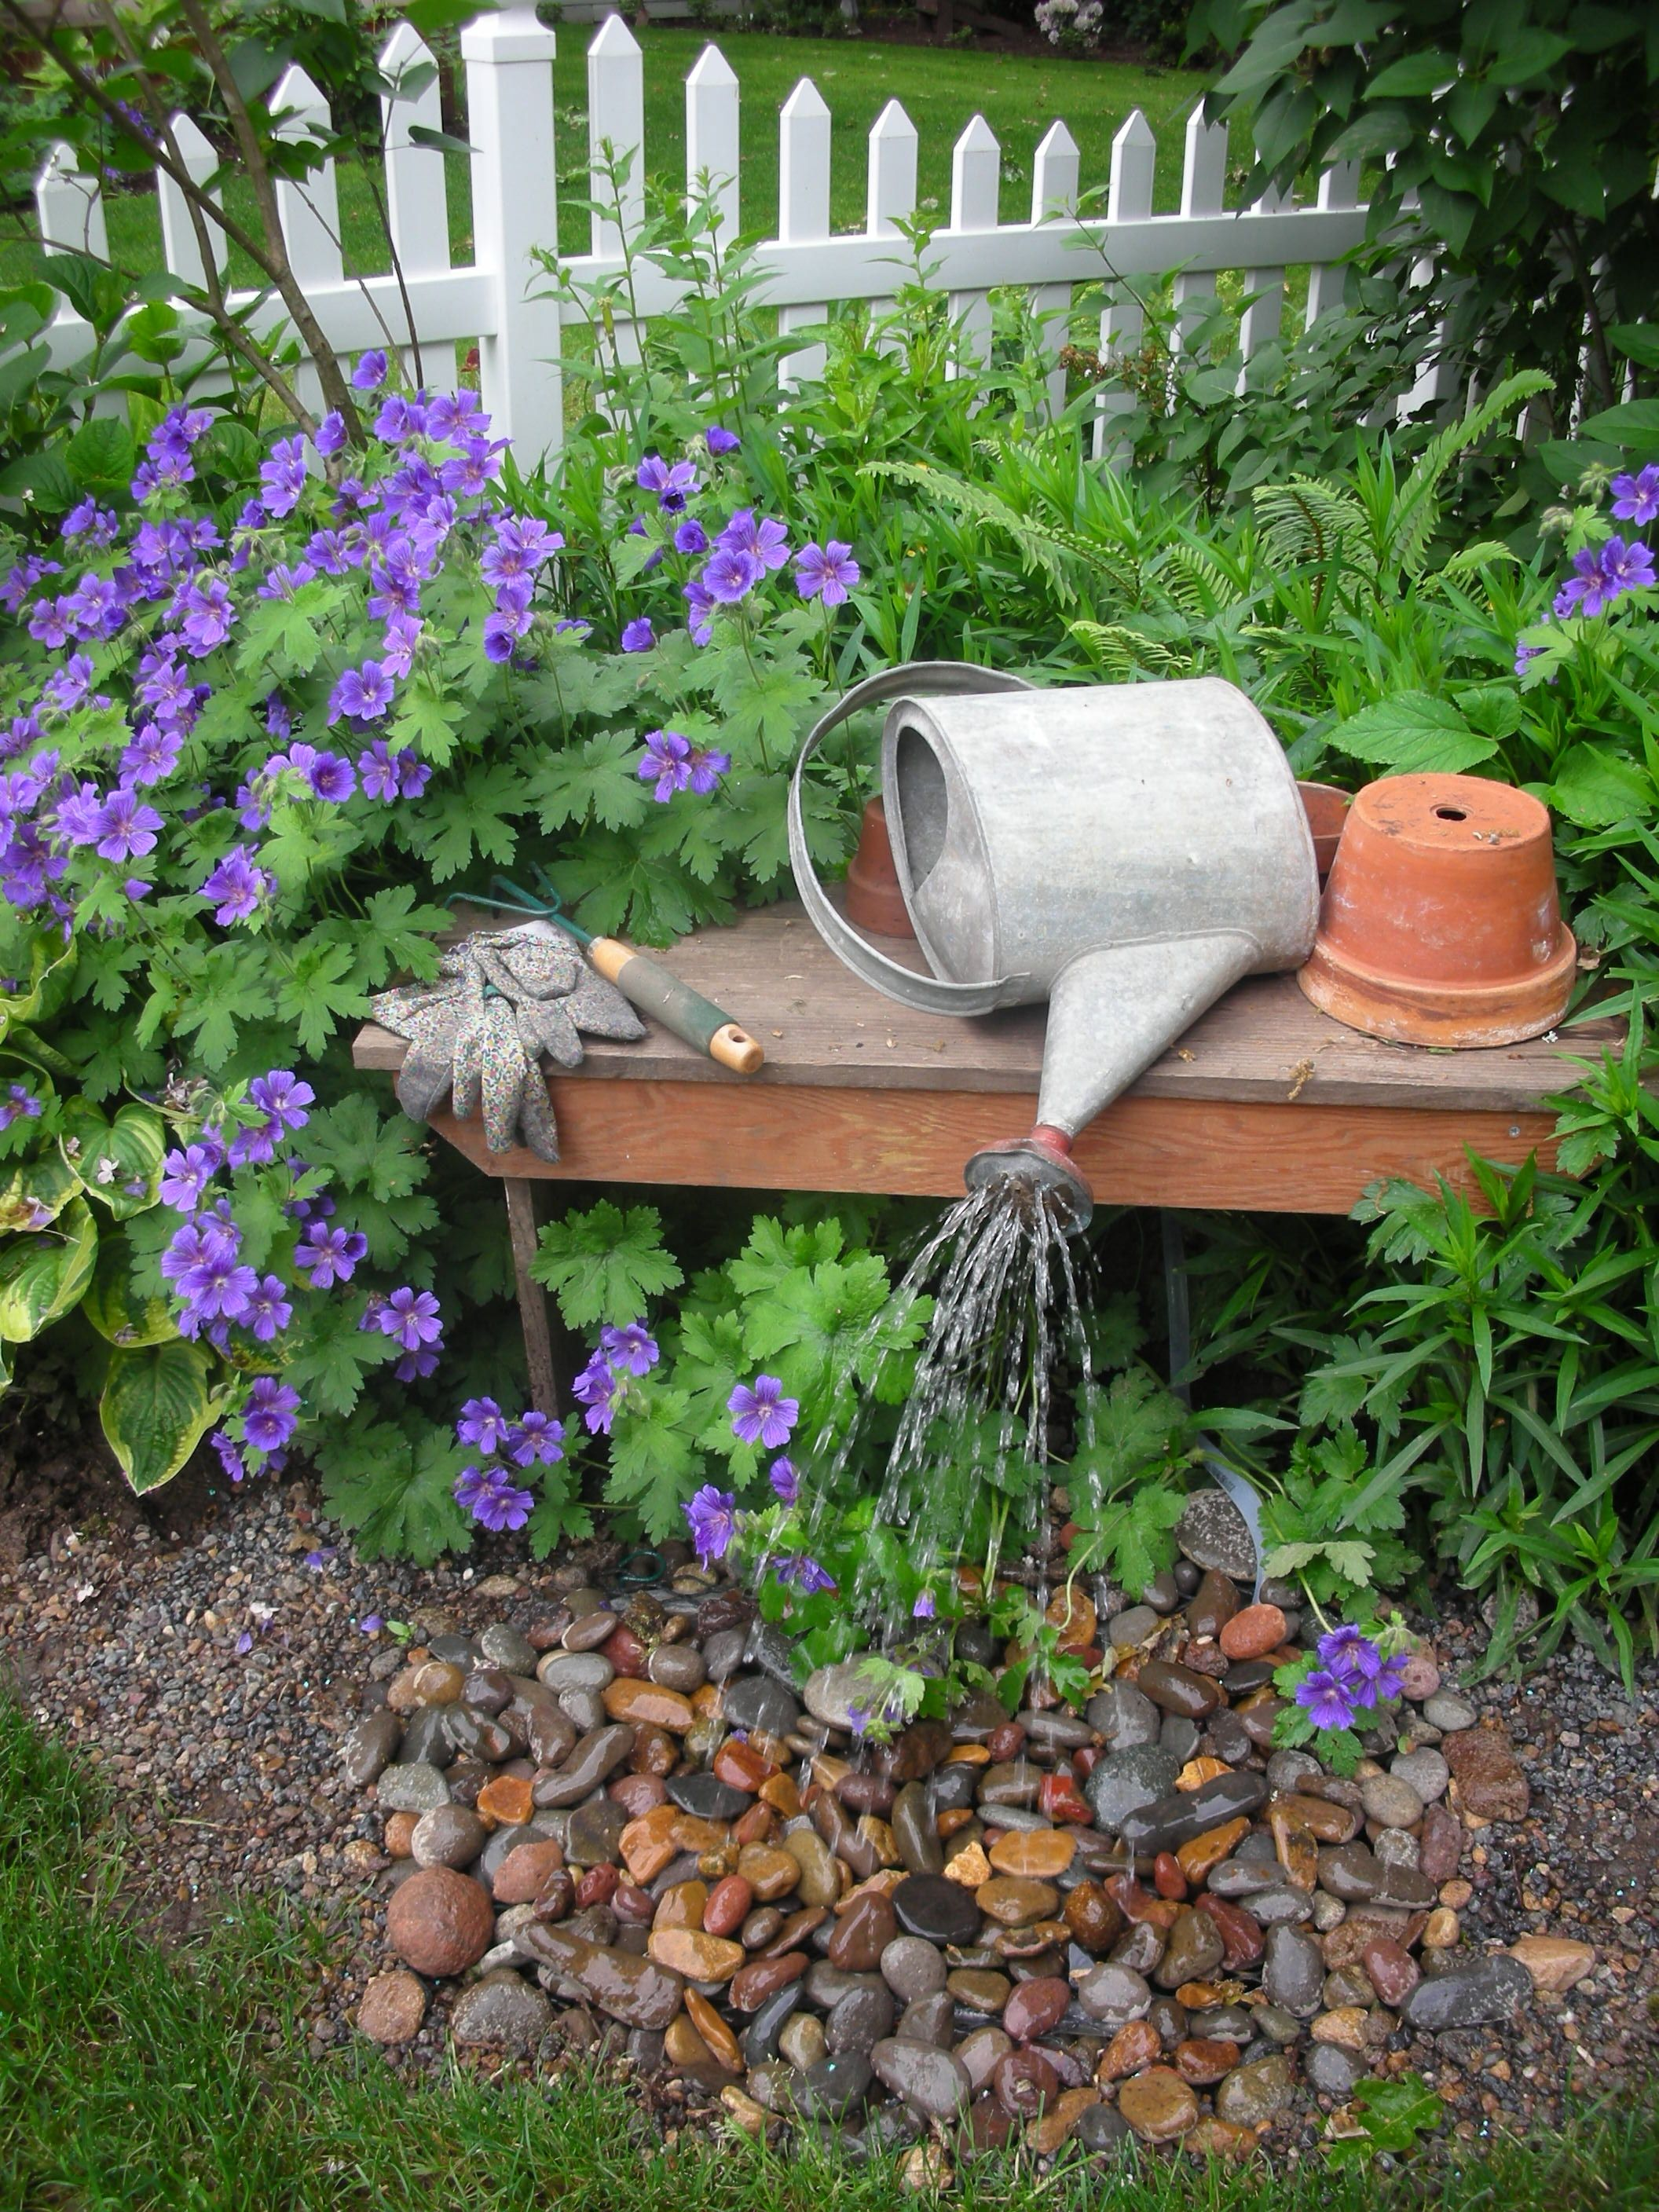 Pin By Carol Drew On Junkin What To Do With What You Find Diy Garden Fountains Cute Garden Ideas Garden Water Fountains